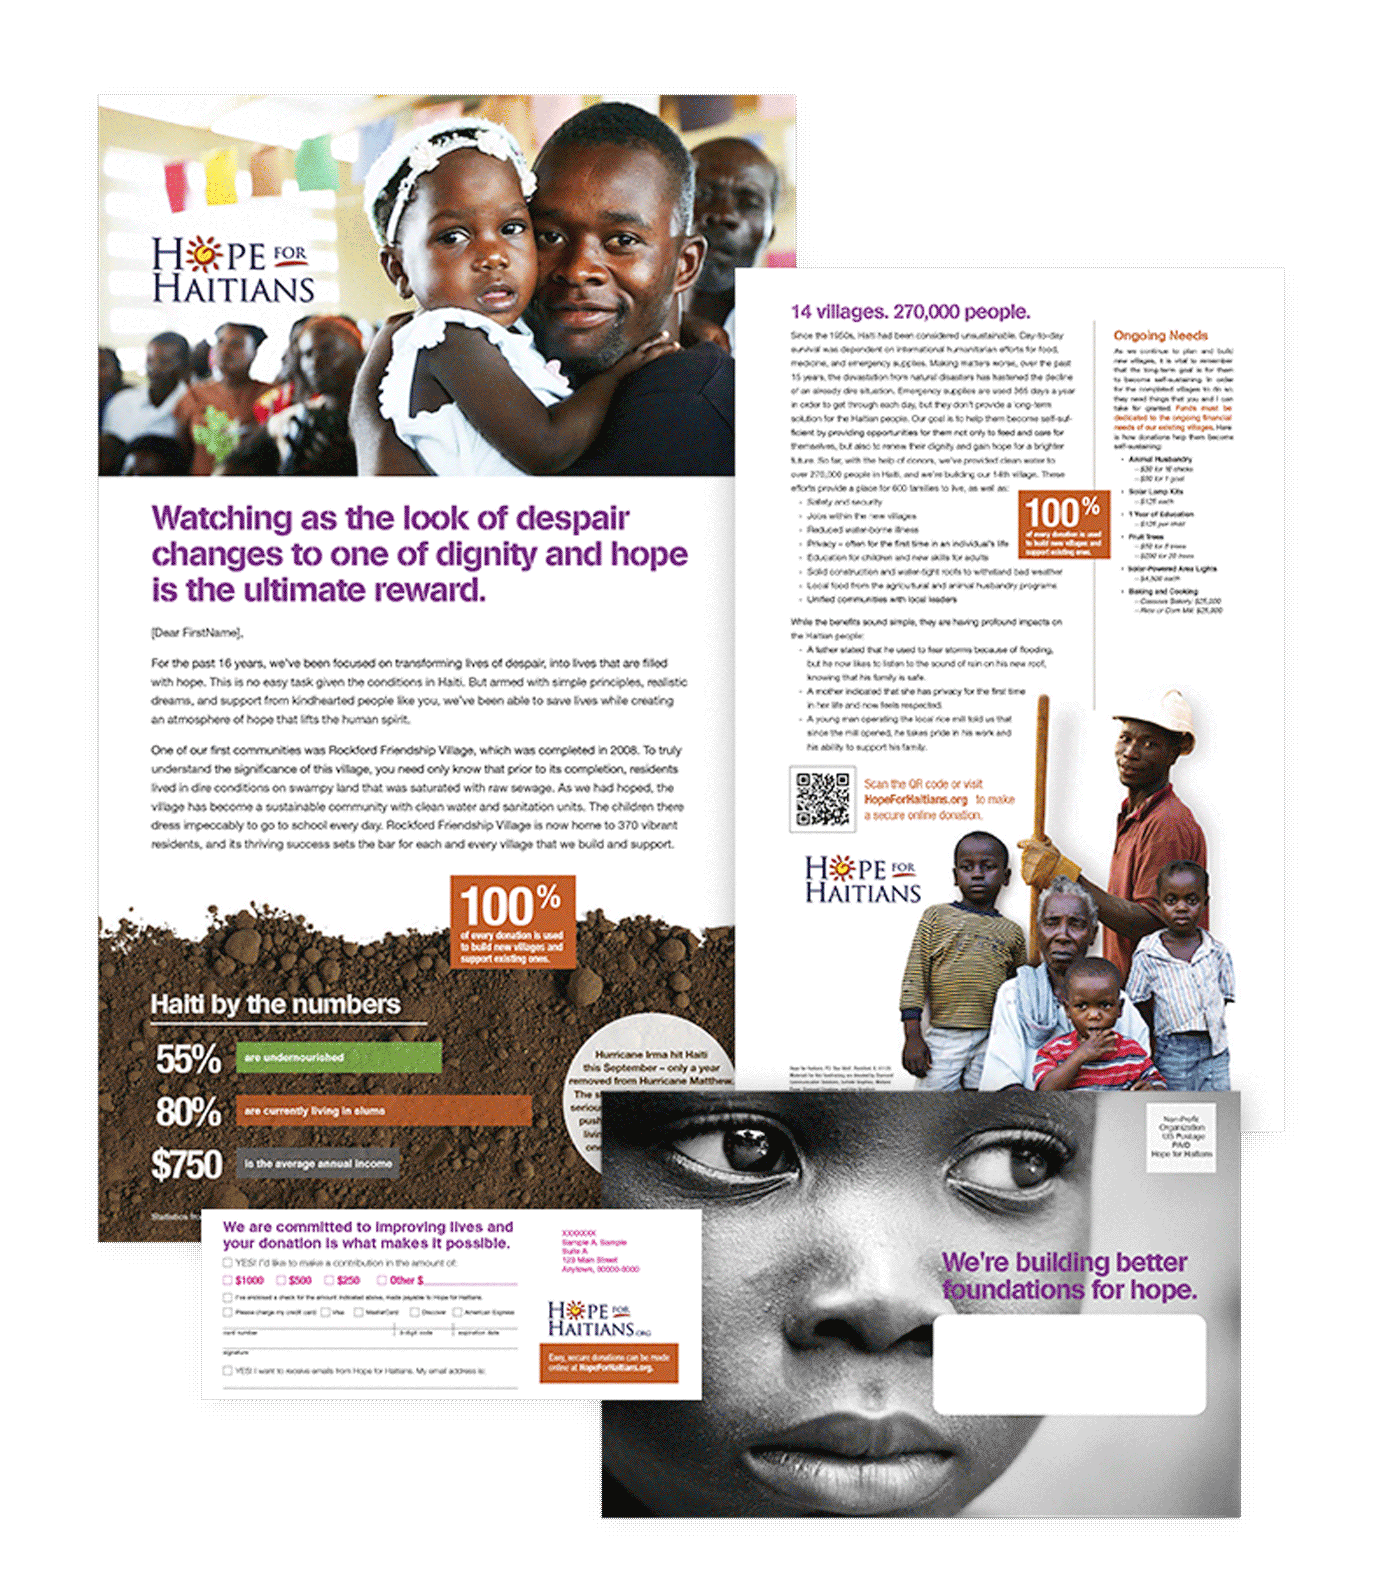 Hope for Haitians Direct Marketing Collateral